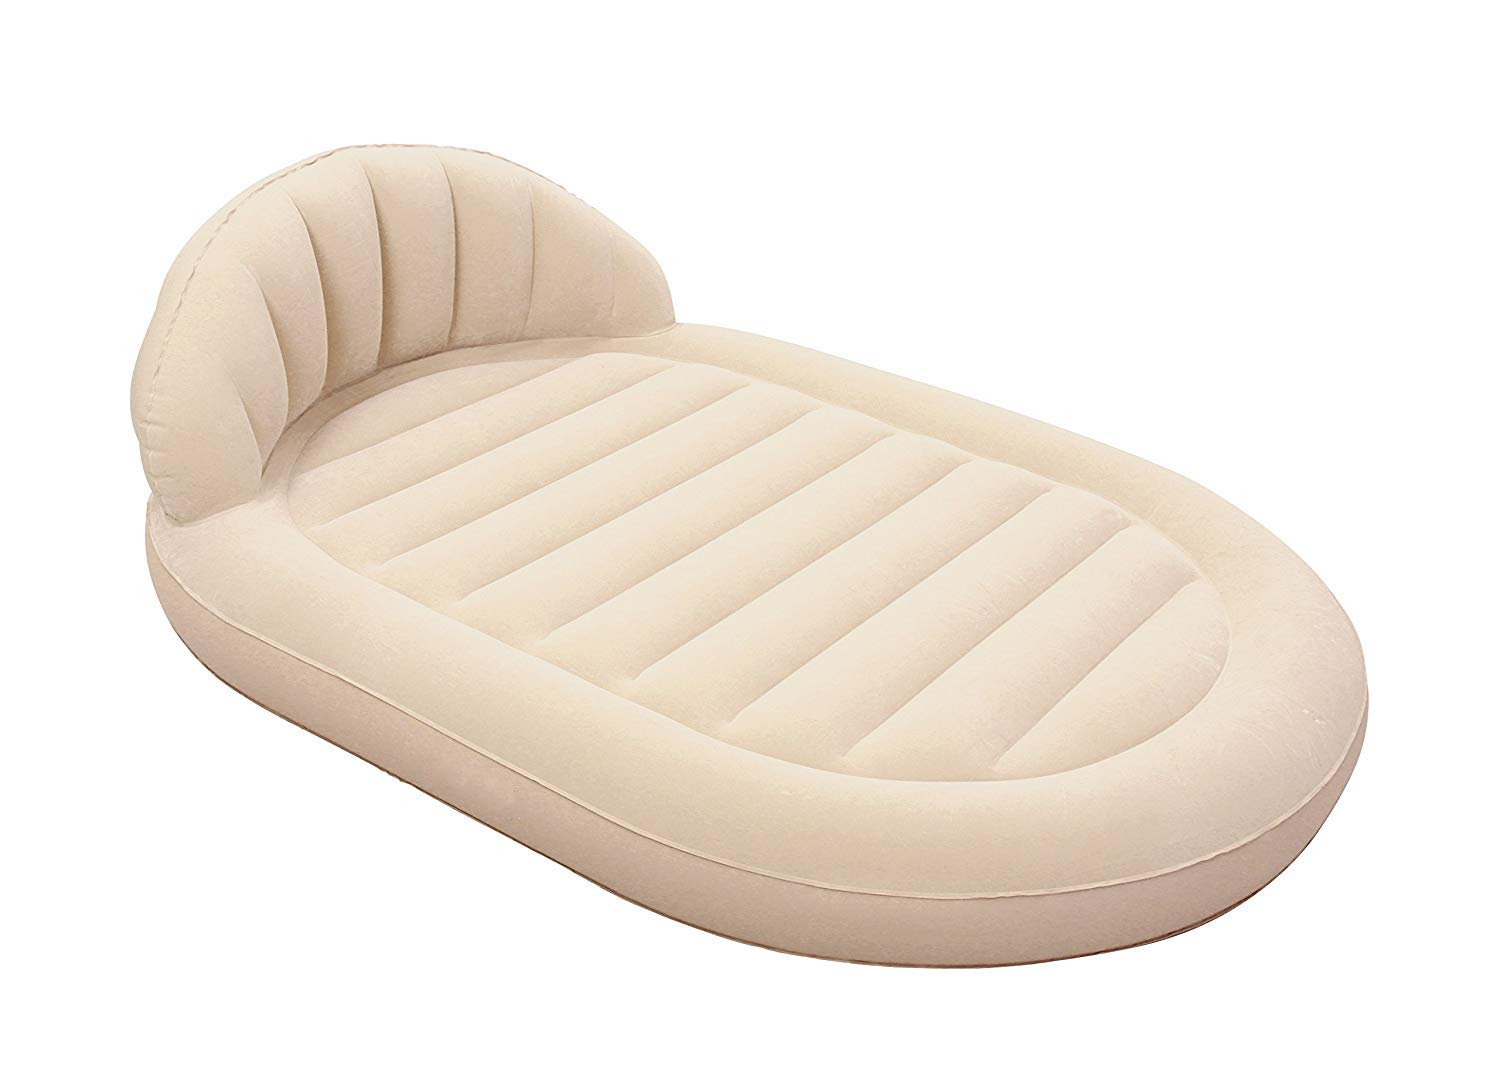 HWShop Cama Inflable de Aire, Flocked airbed Cama ...